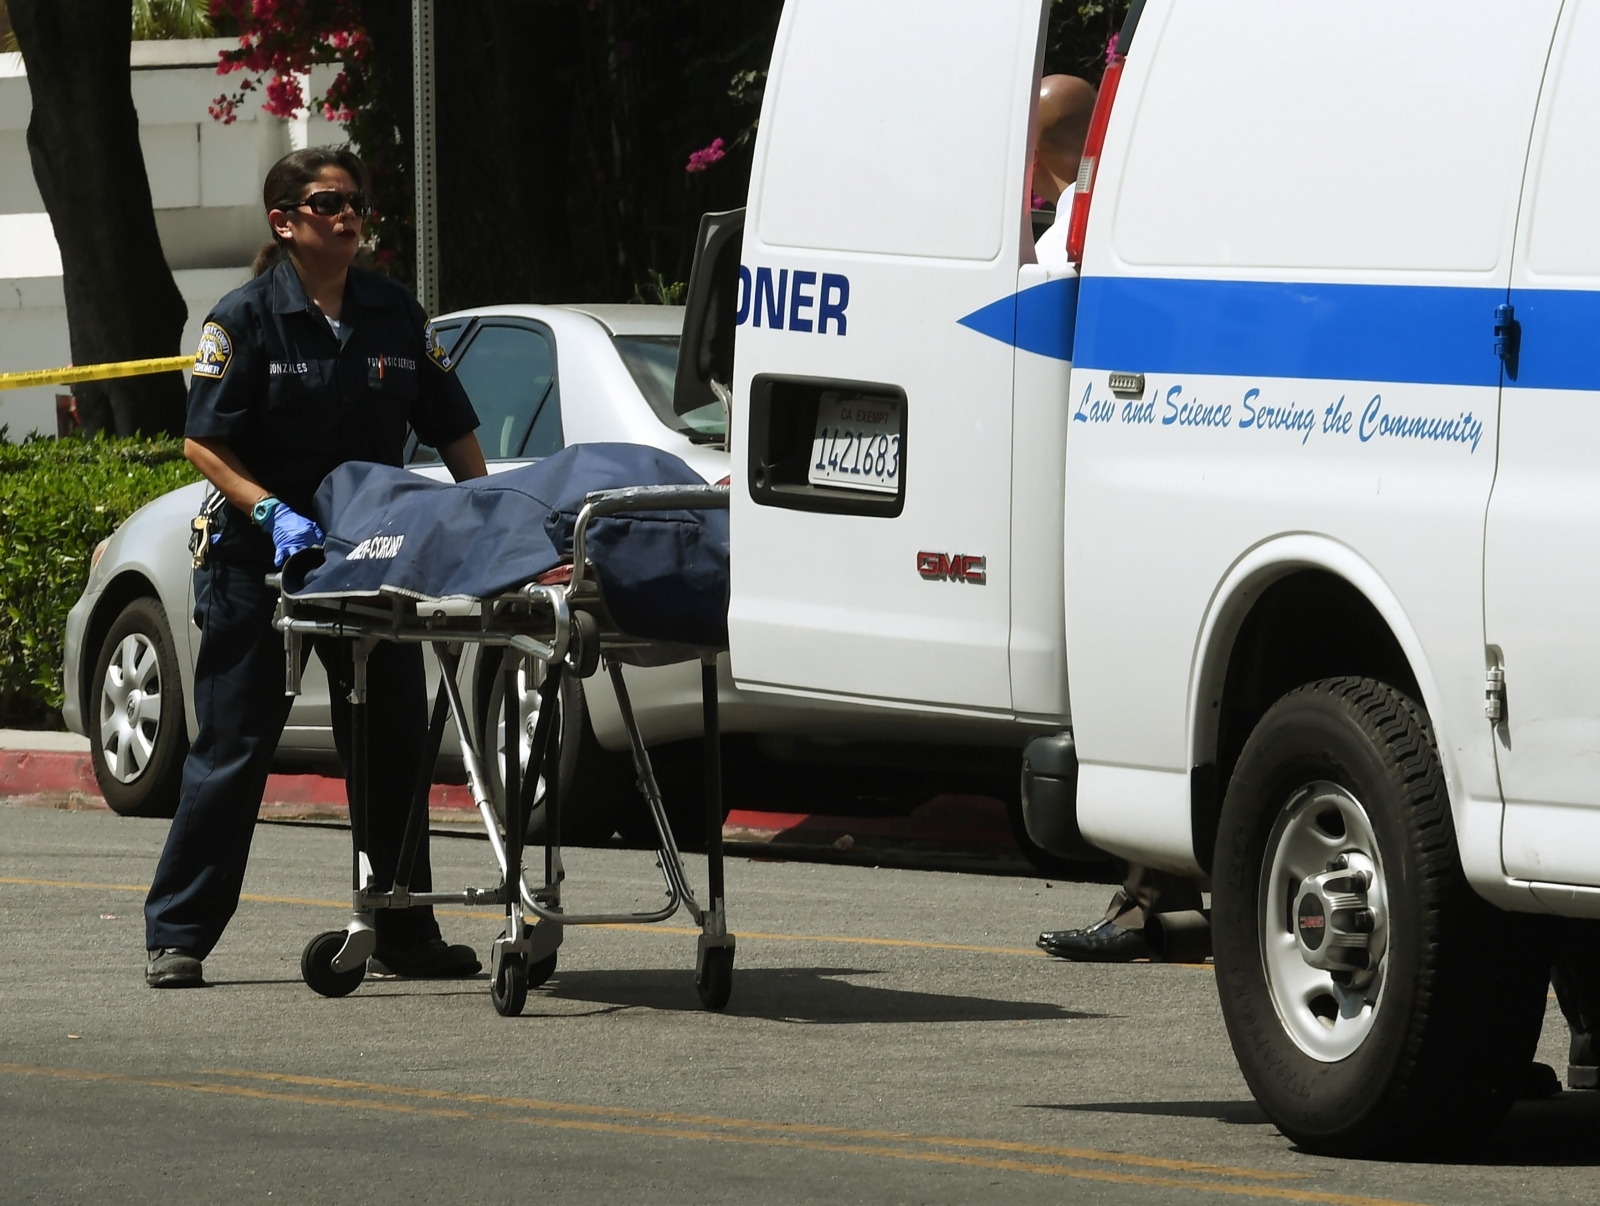 Man Fires Gun, Kills Himself Outside Chinese Consulate in LA